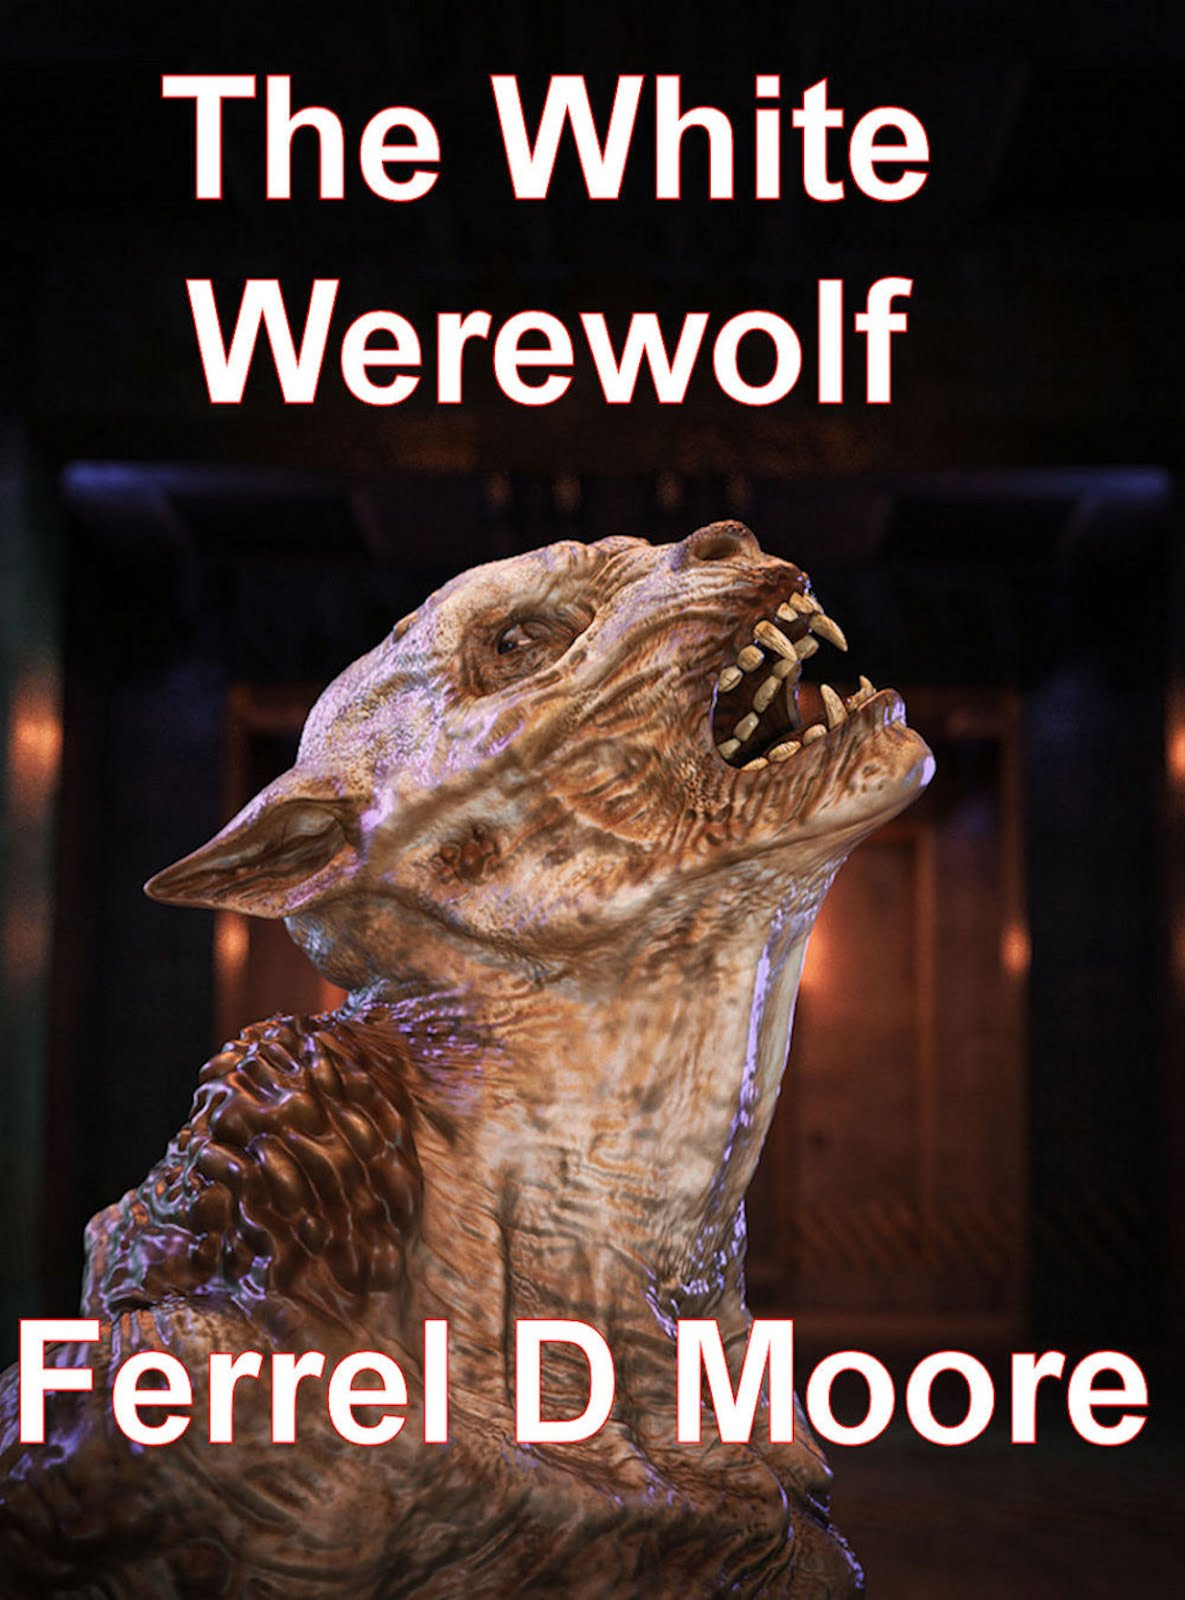 The White Werewolf